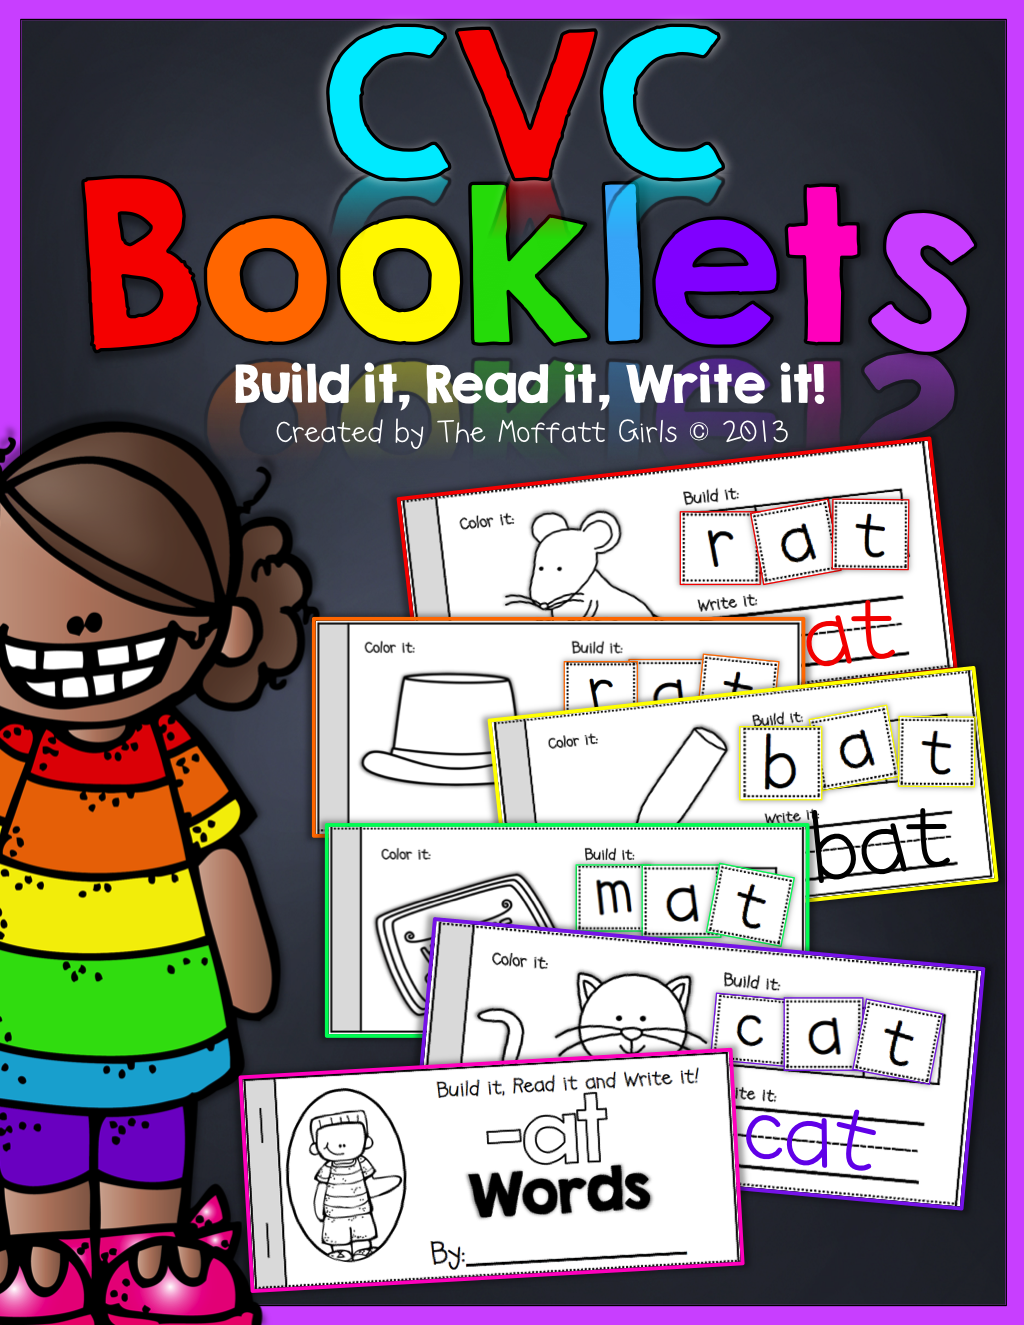 Cvc Booklets Build It Read It Write It Such A Fun And Hands On Way To Work With 23 Of The